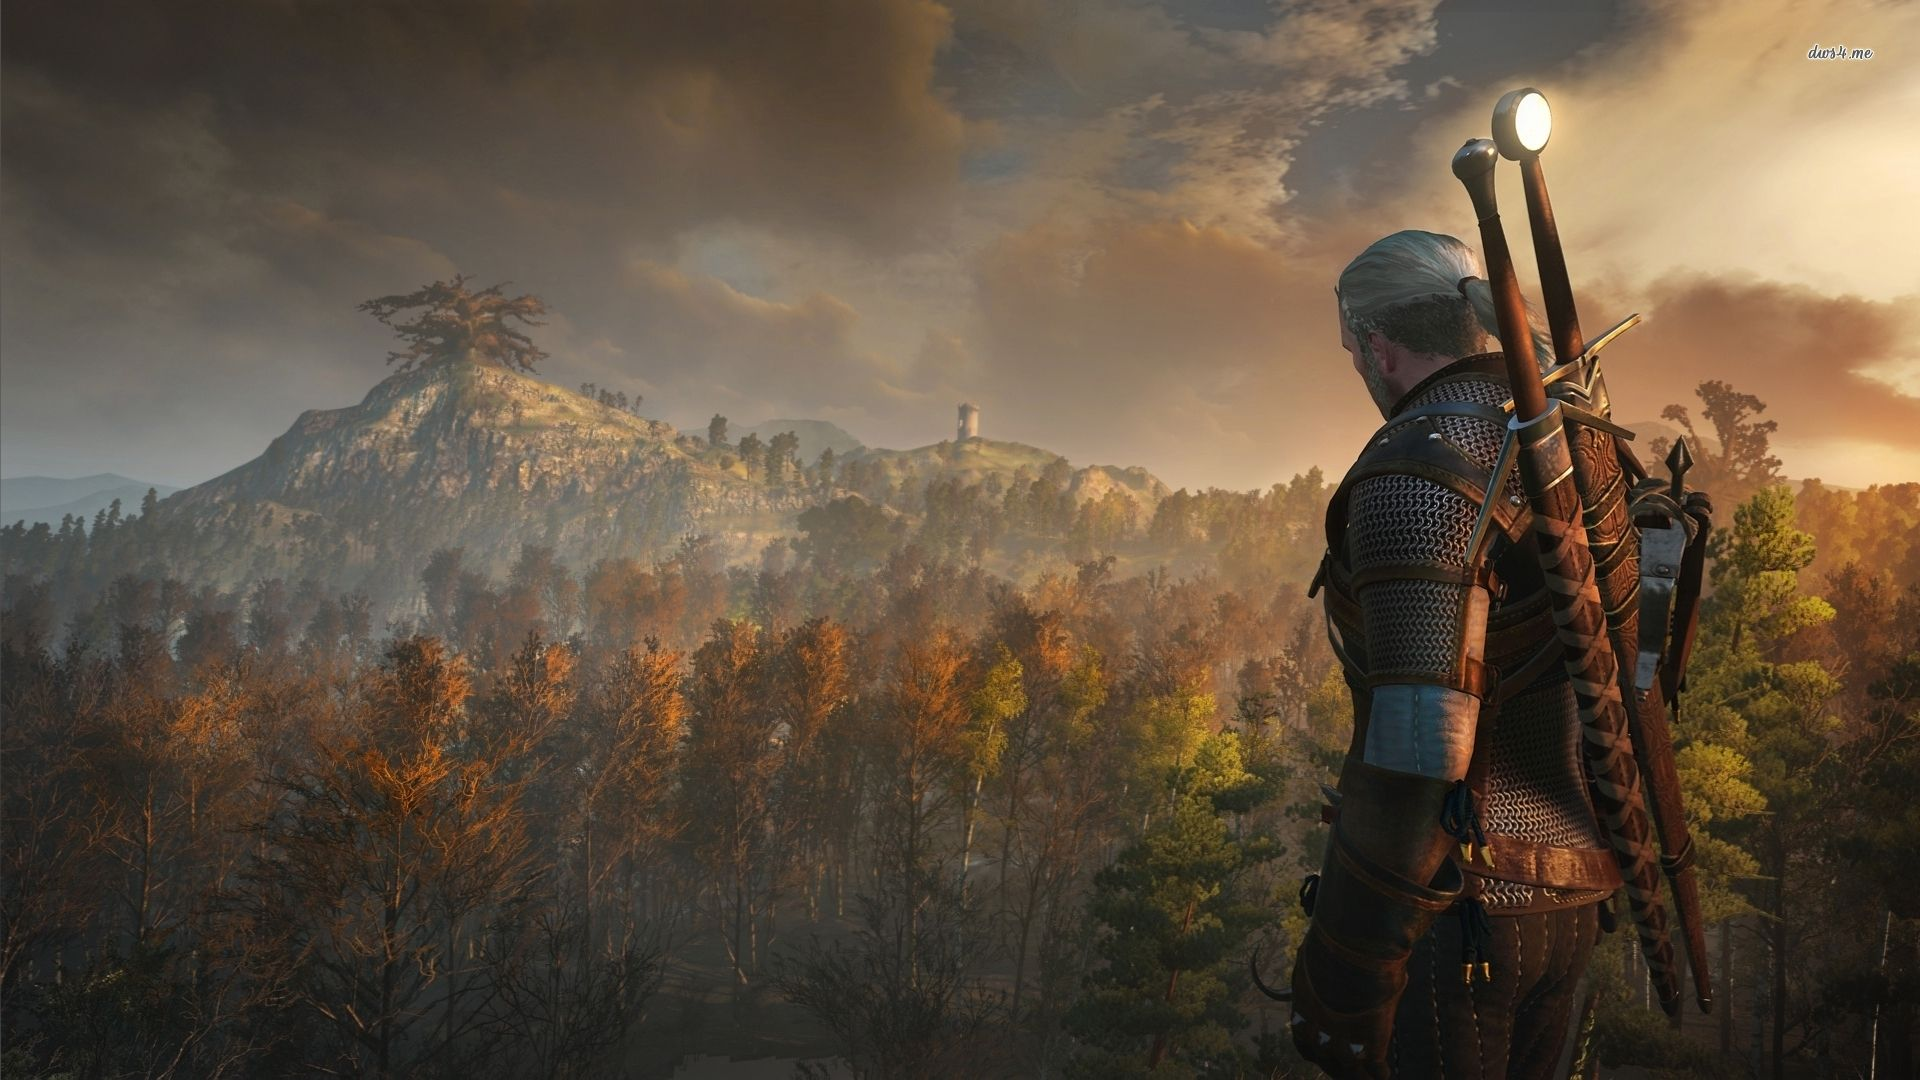 The Witcher Wild Hunt Wallpapers HD Wallpapers | wallpapers in 2019 | The Witcher, The witcher ...